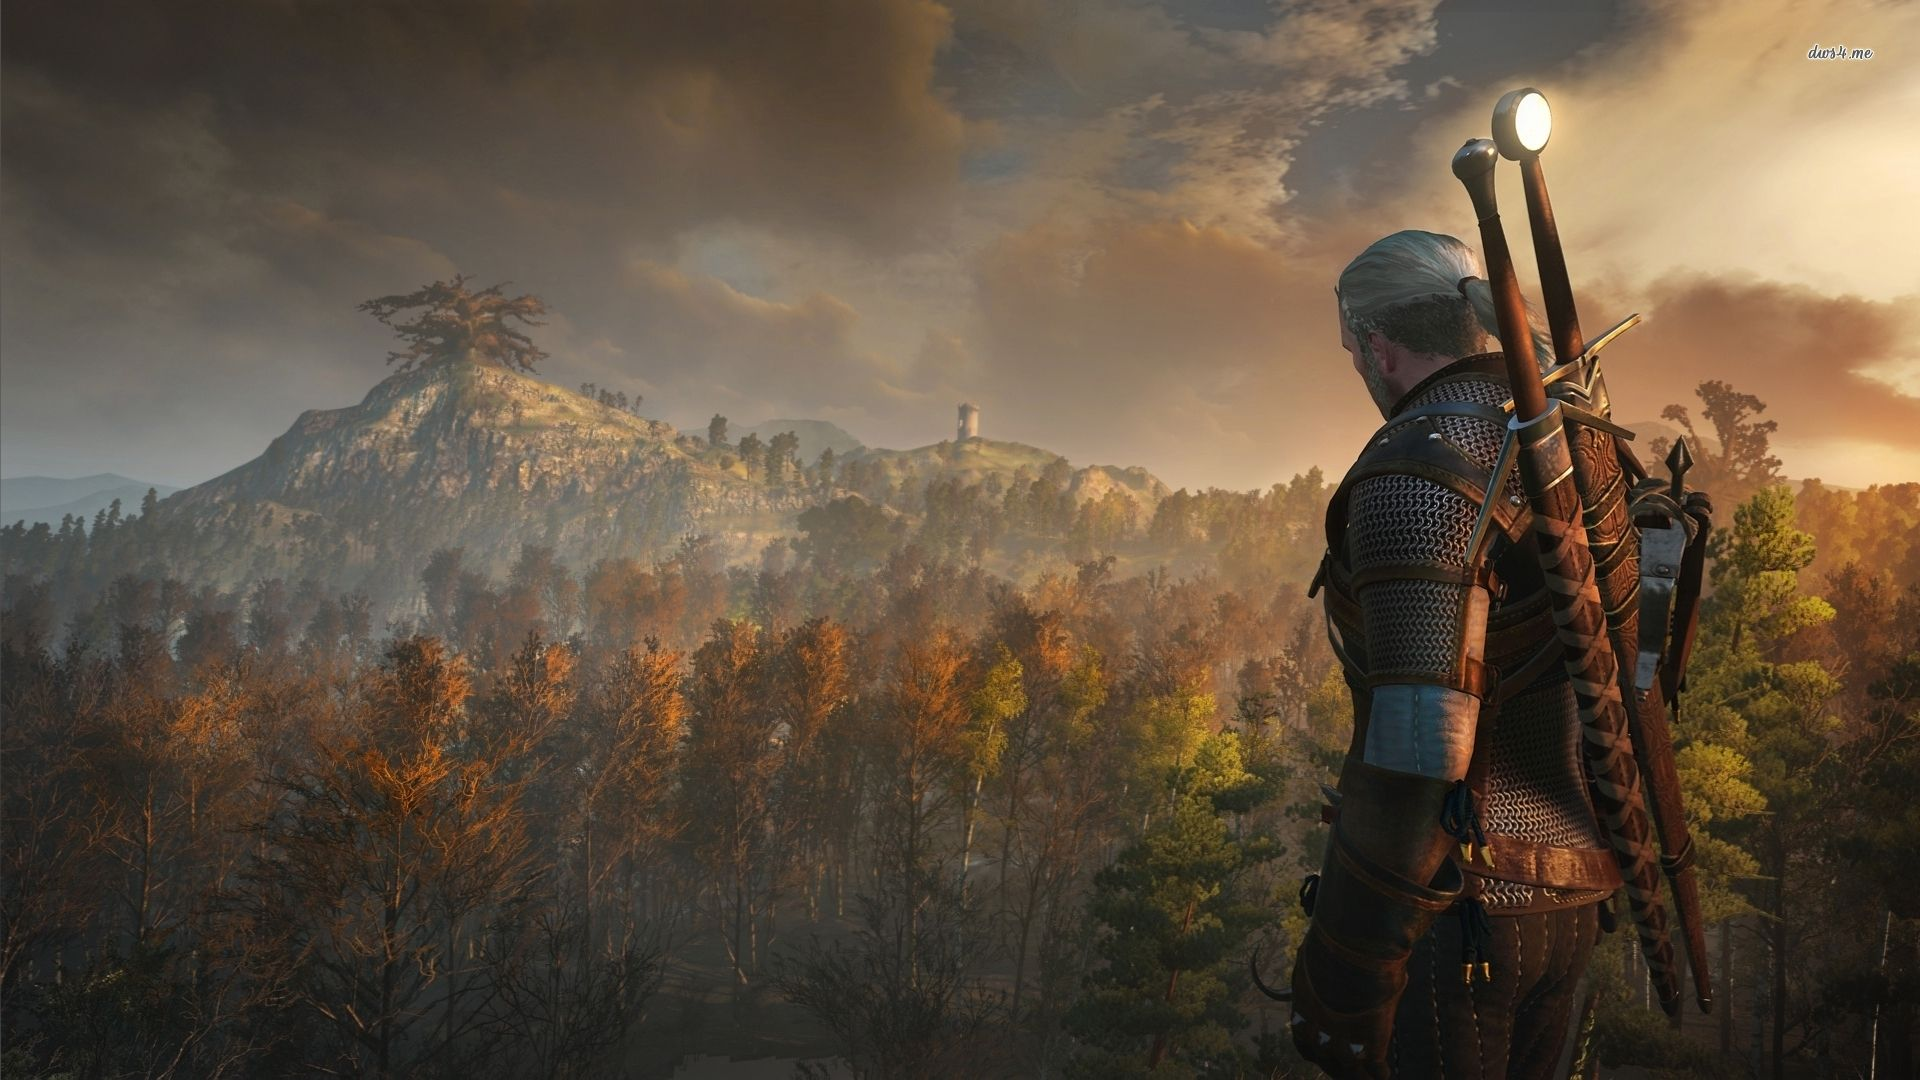 The Witcher Wild Hunt Wallpapers HD Wallpapers | wallpapers in 2019 | The Witcher, The witcher ...